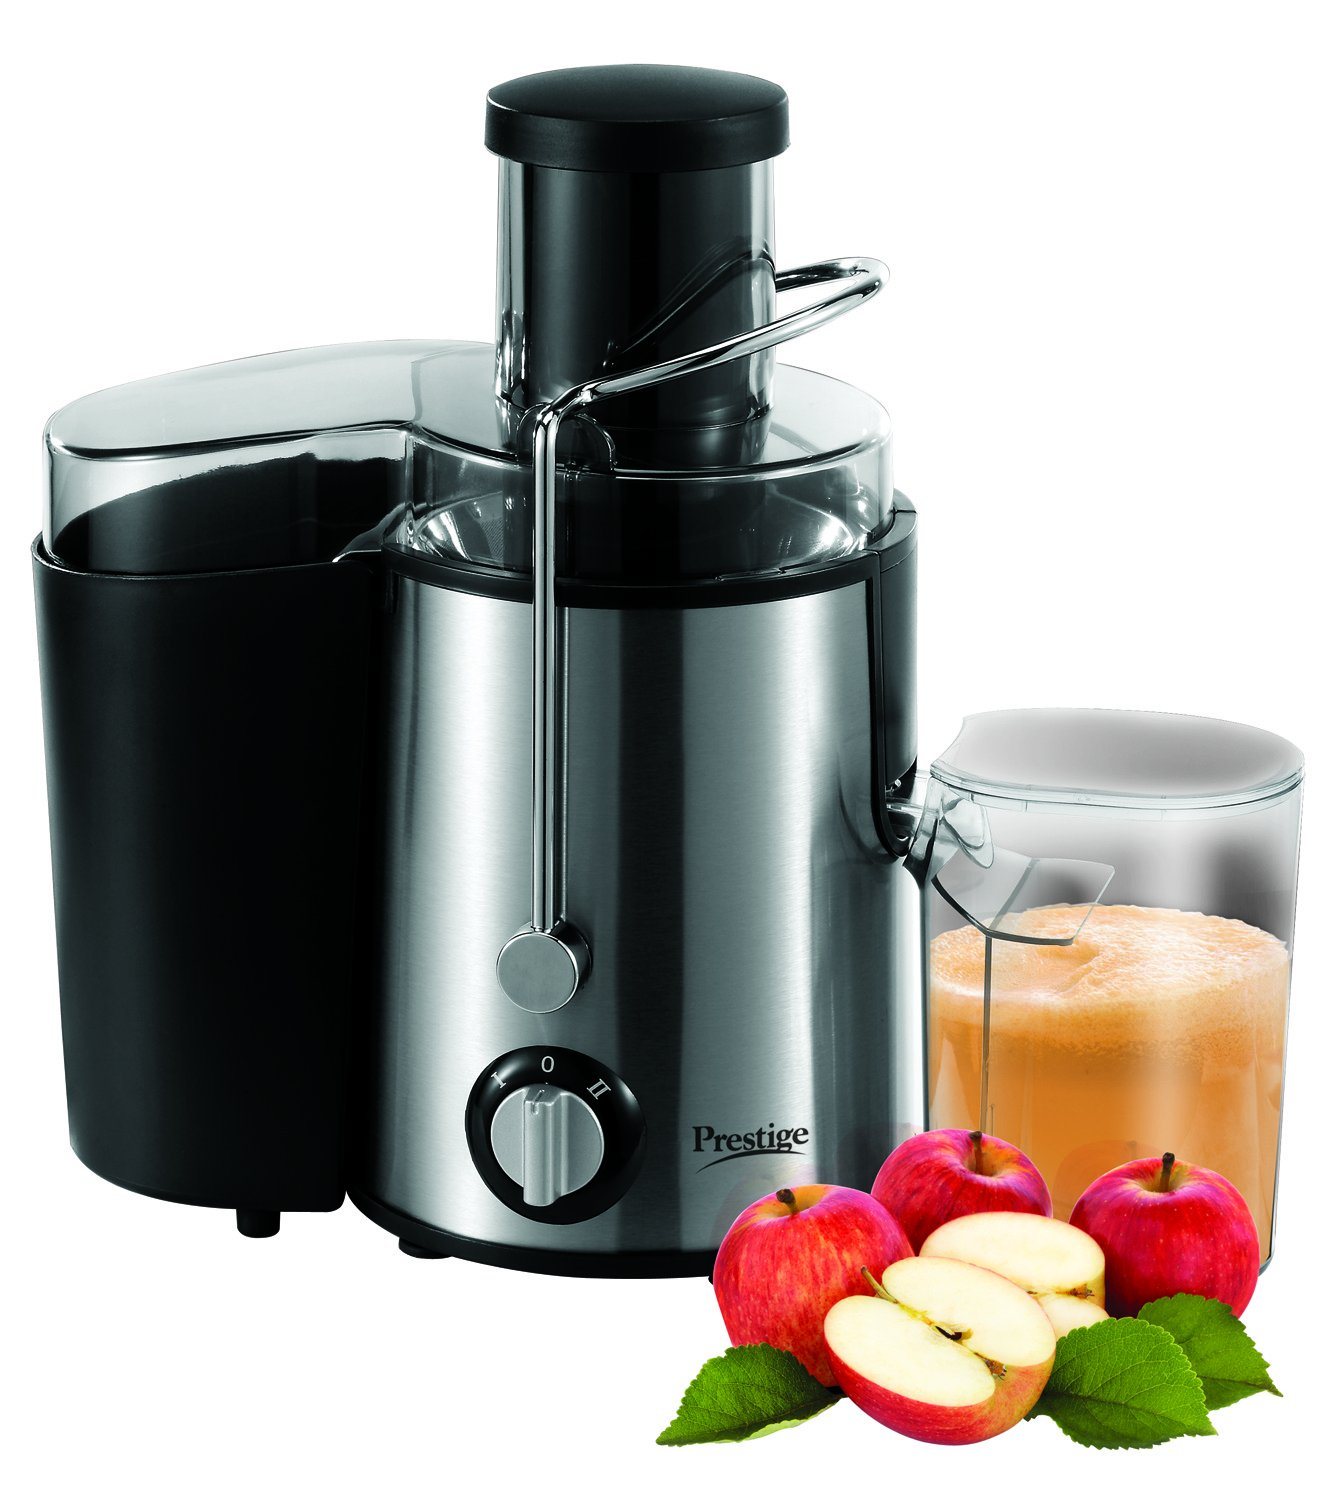 Prestige Slow Juicer Review : Best Juicers in India 2018 - Reviews And Comparisons